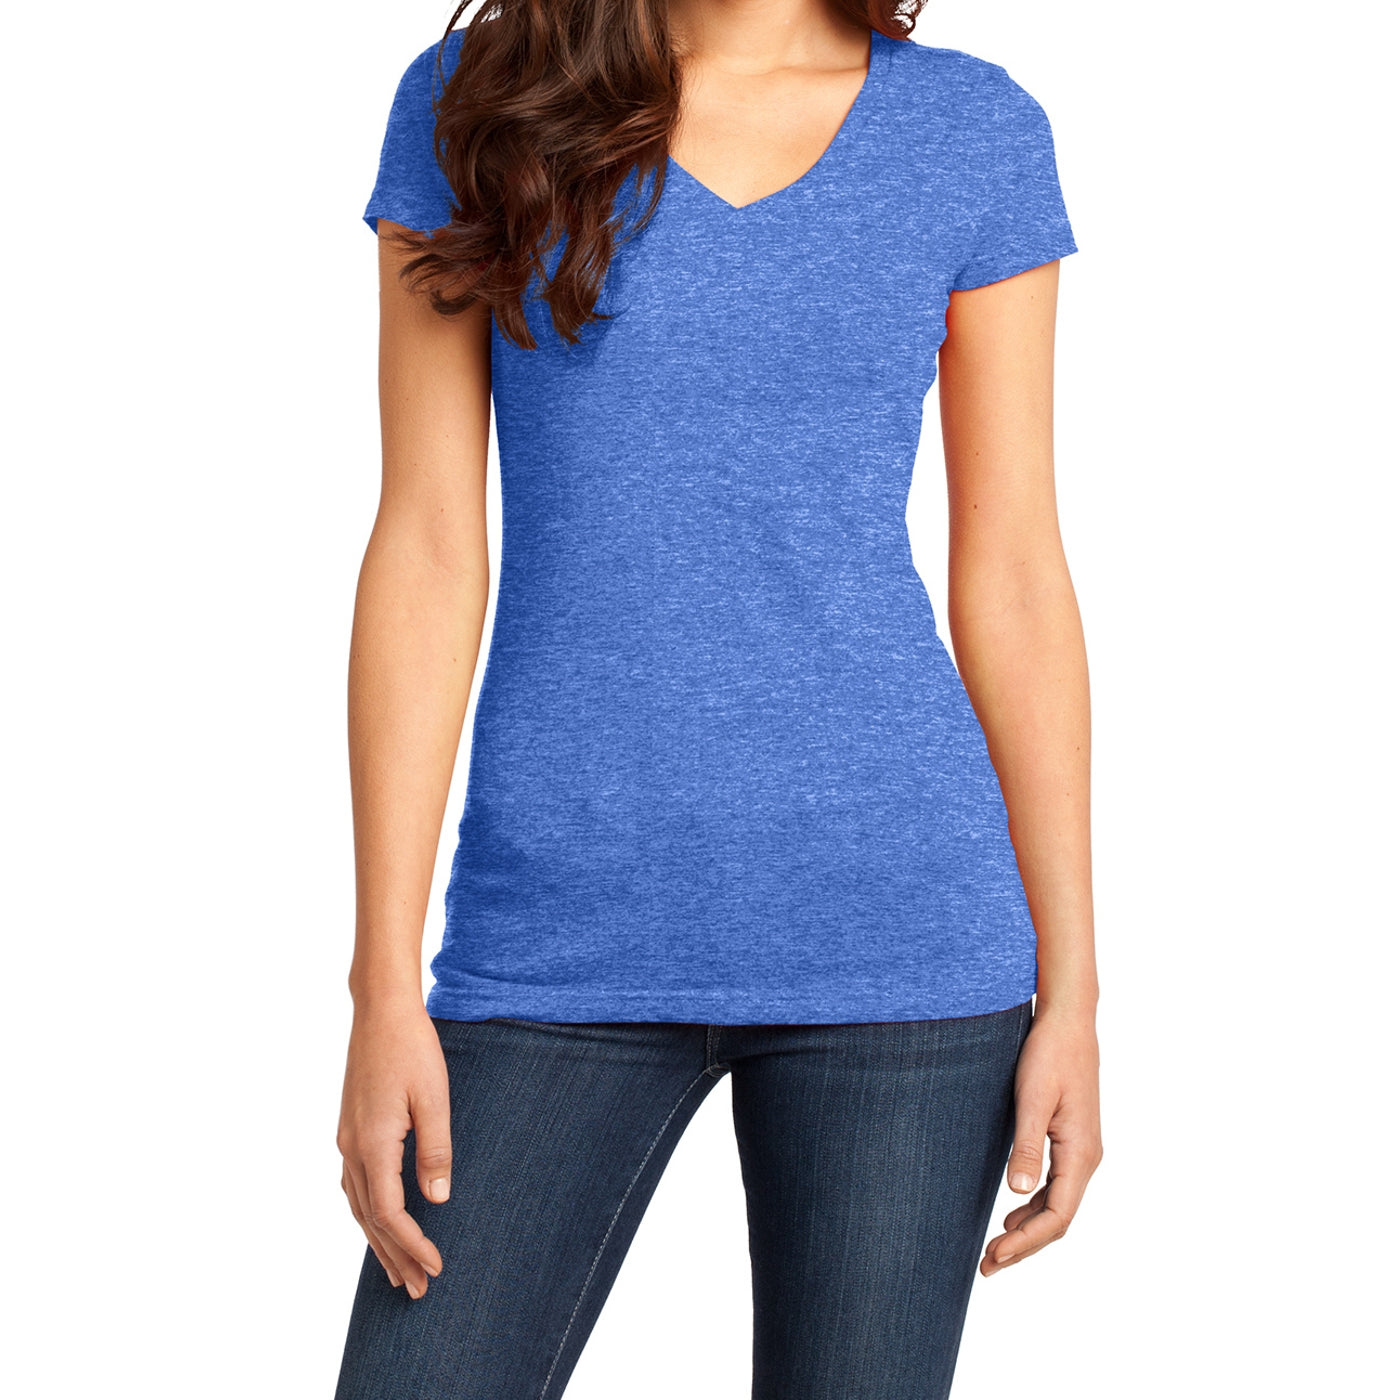 Women's Juniors Very Important Tee V-Neck - Heathered Royal